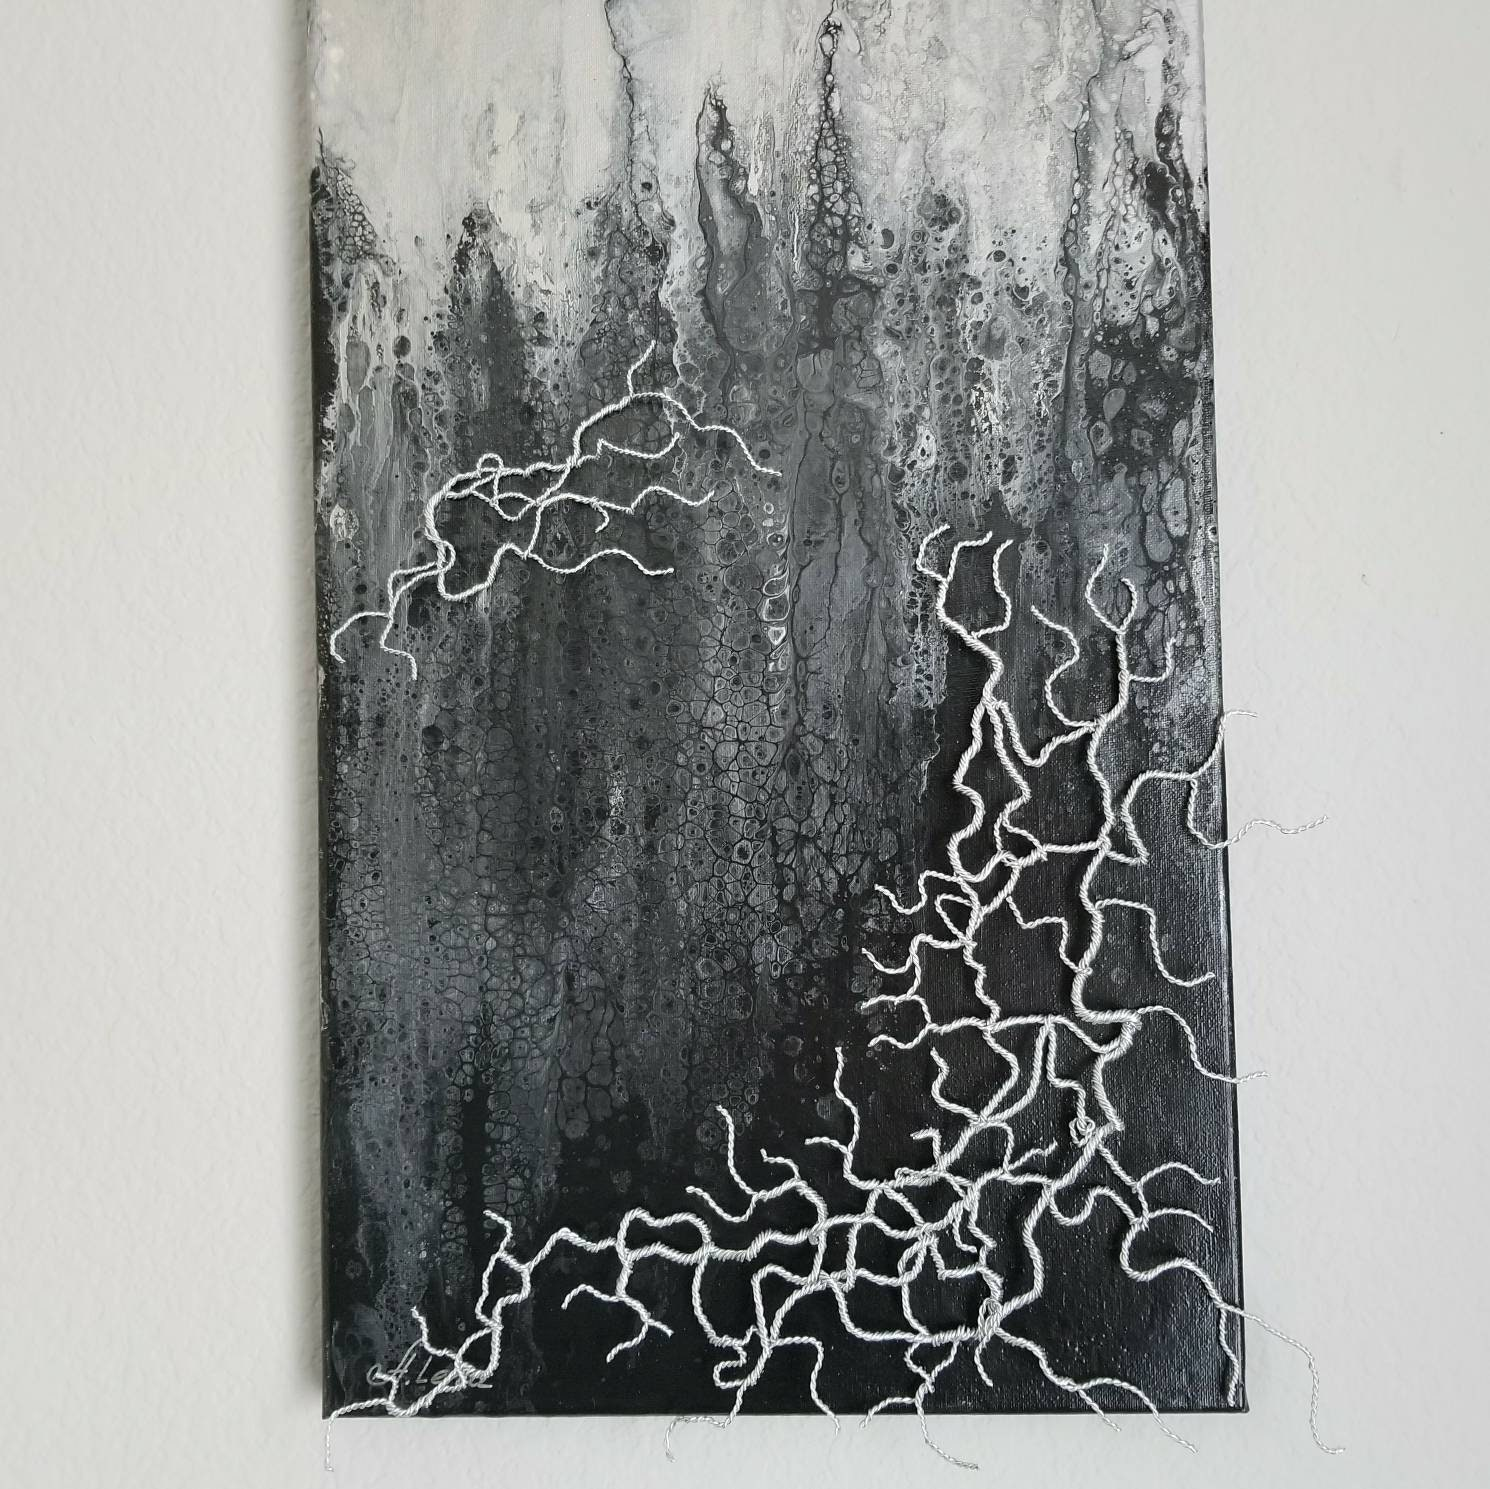 Abstract Metal Wall Art Home Decor Silver Aluminum On Canvas Sculpture Contemporary Acrylic Painting Black And White Office